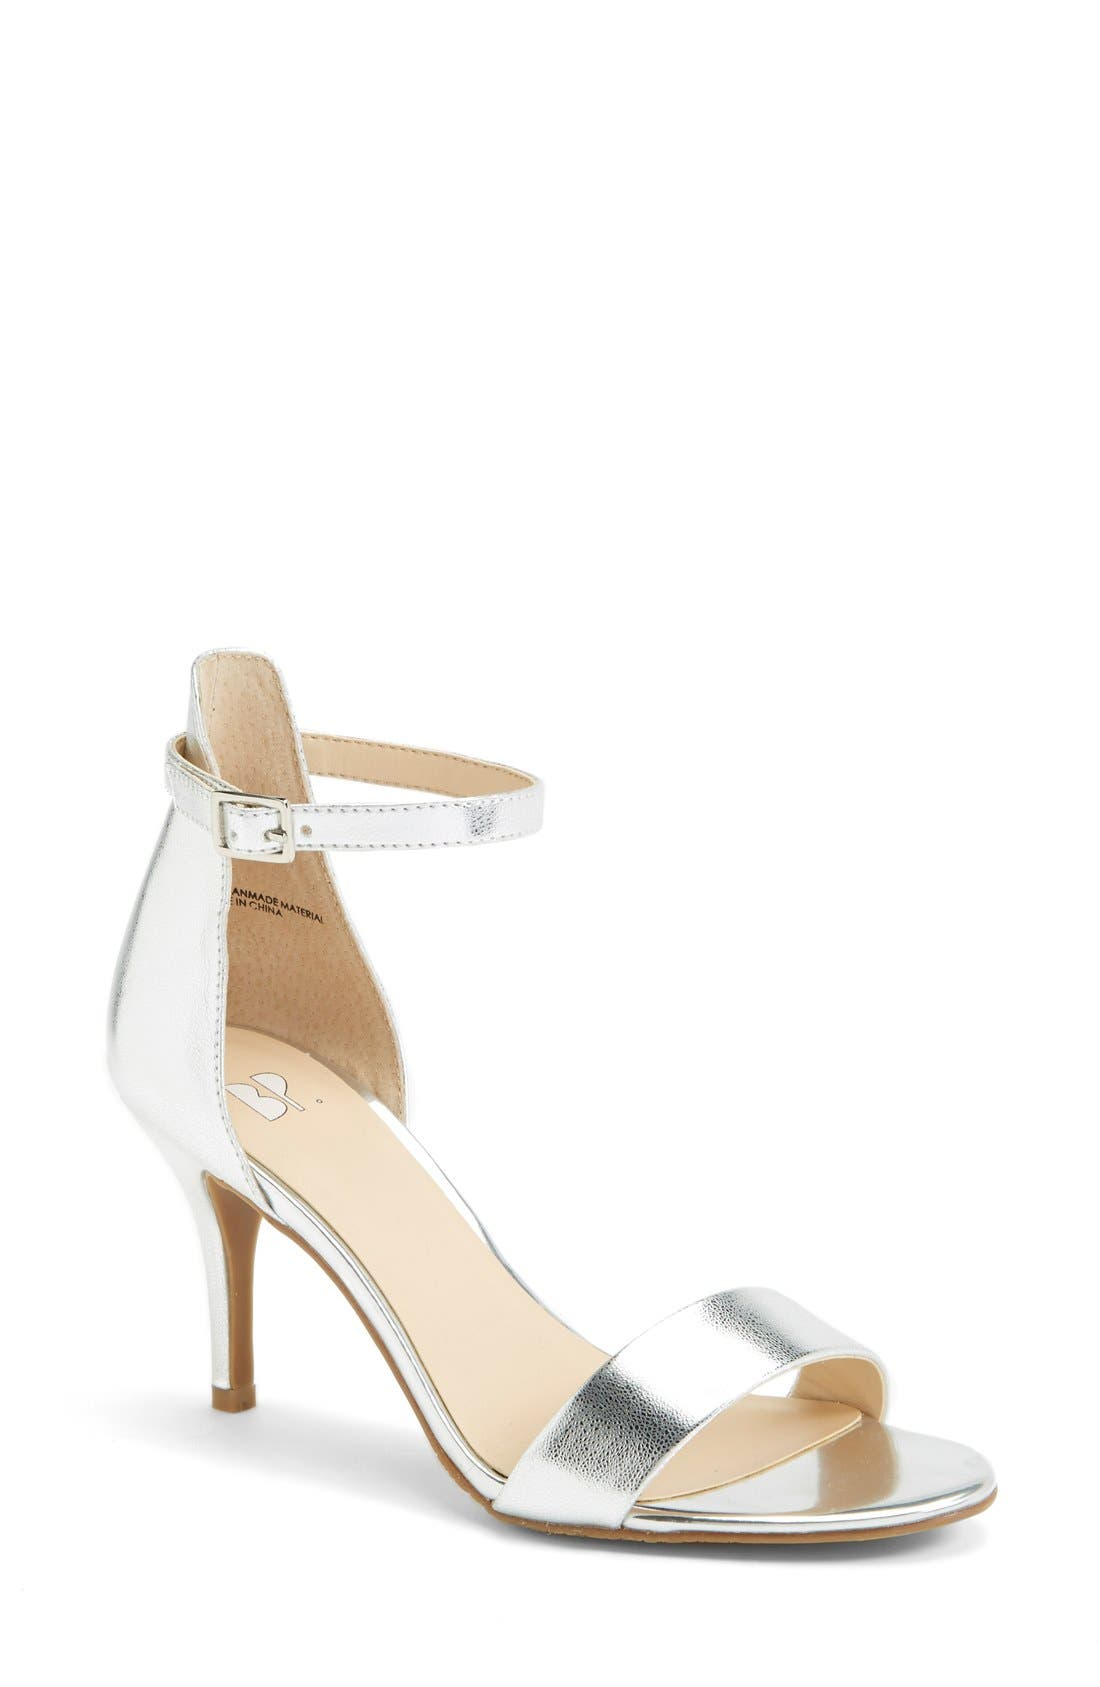 'Luminate' Open Toe Dress Sandal,                             Main thumbnail 20, color,